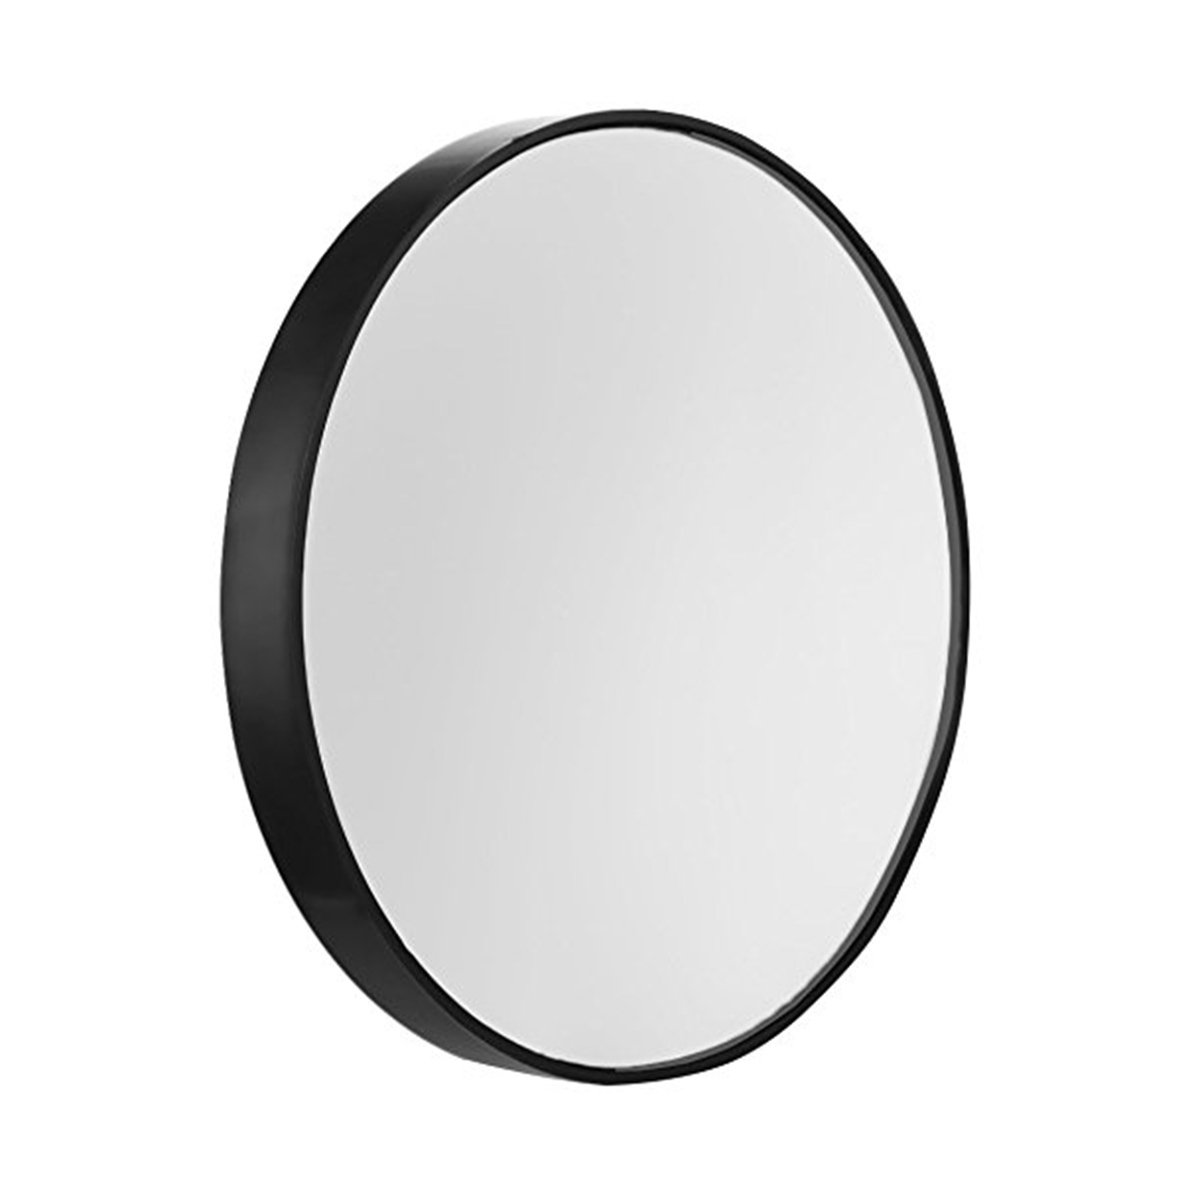 Frcolor Makeup Mirror, 3.5inch 15X Magnifying Round Detachable with Suction Cups